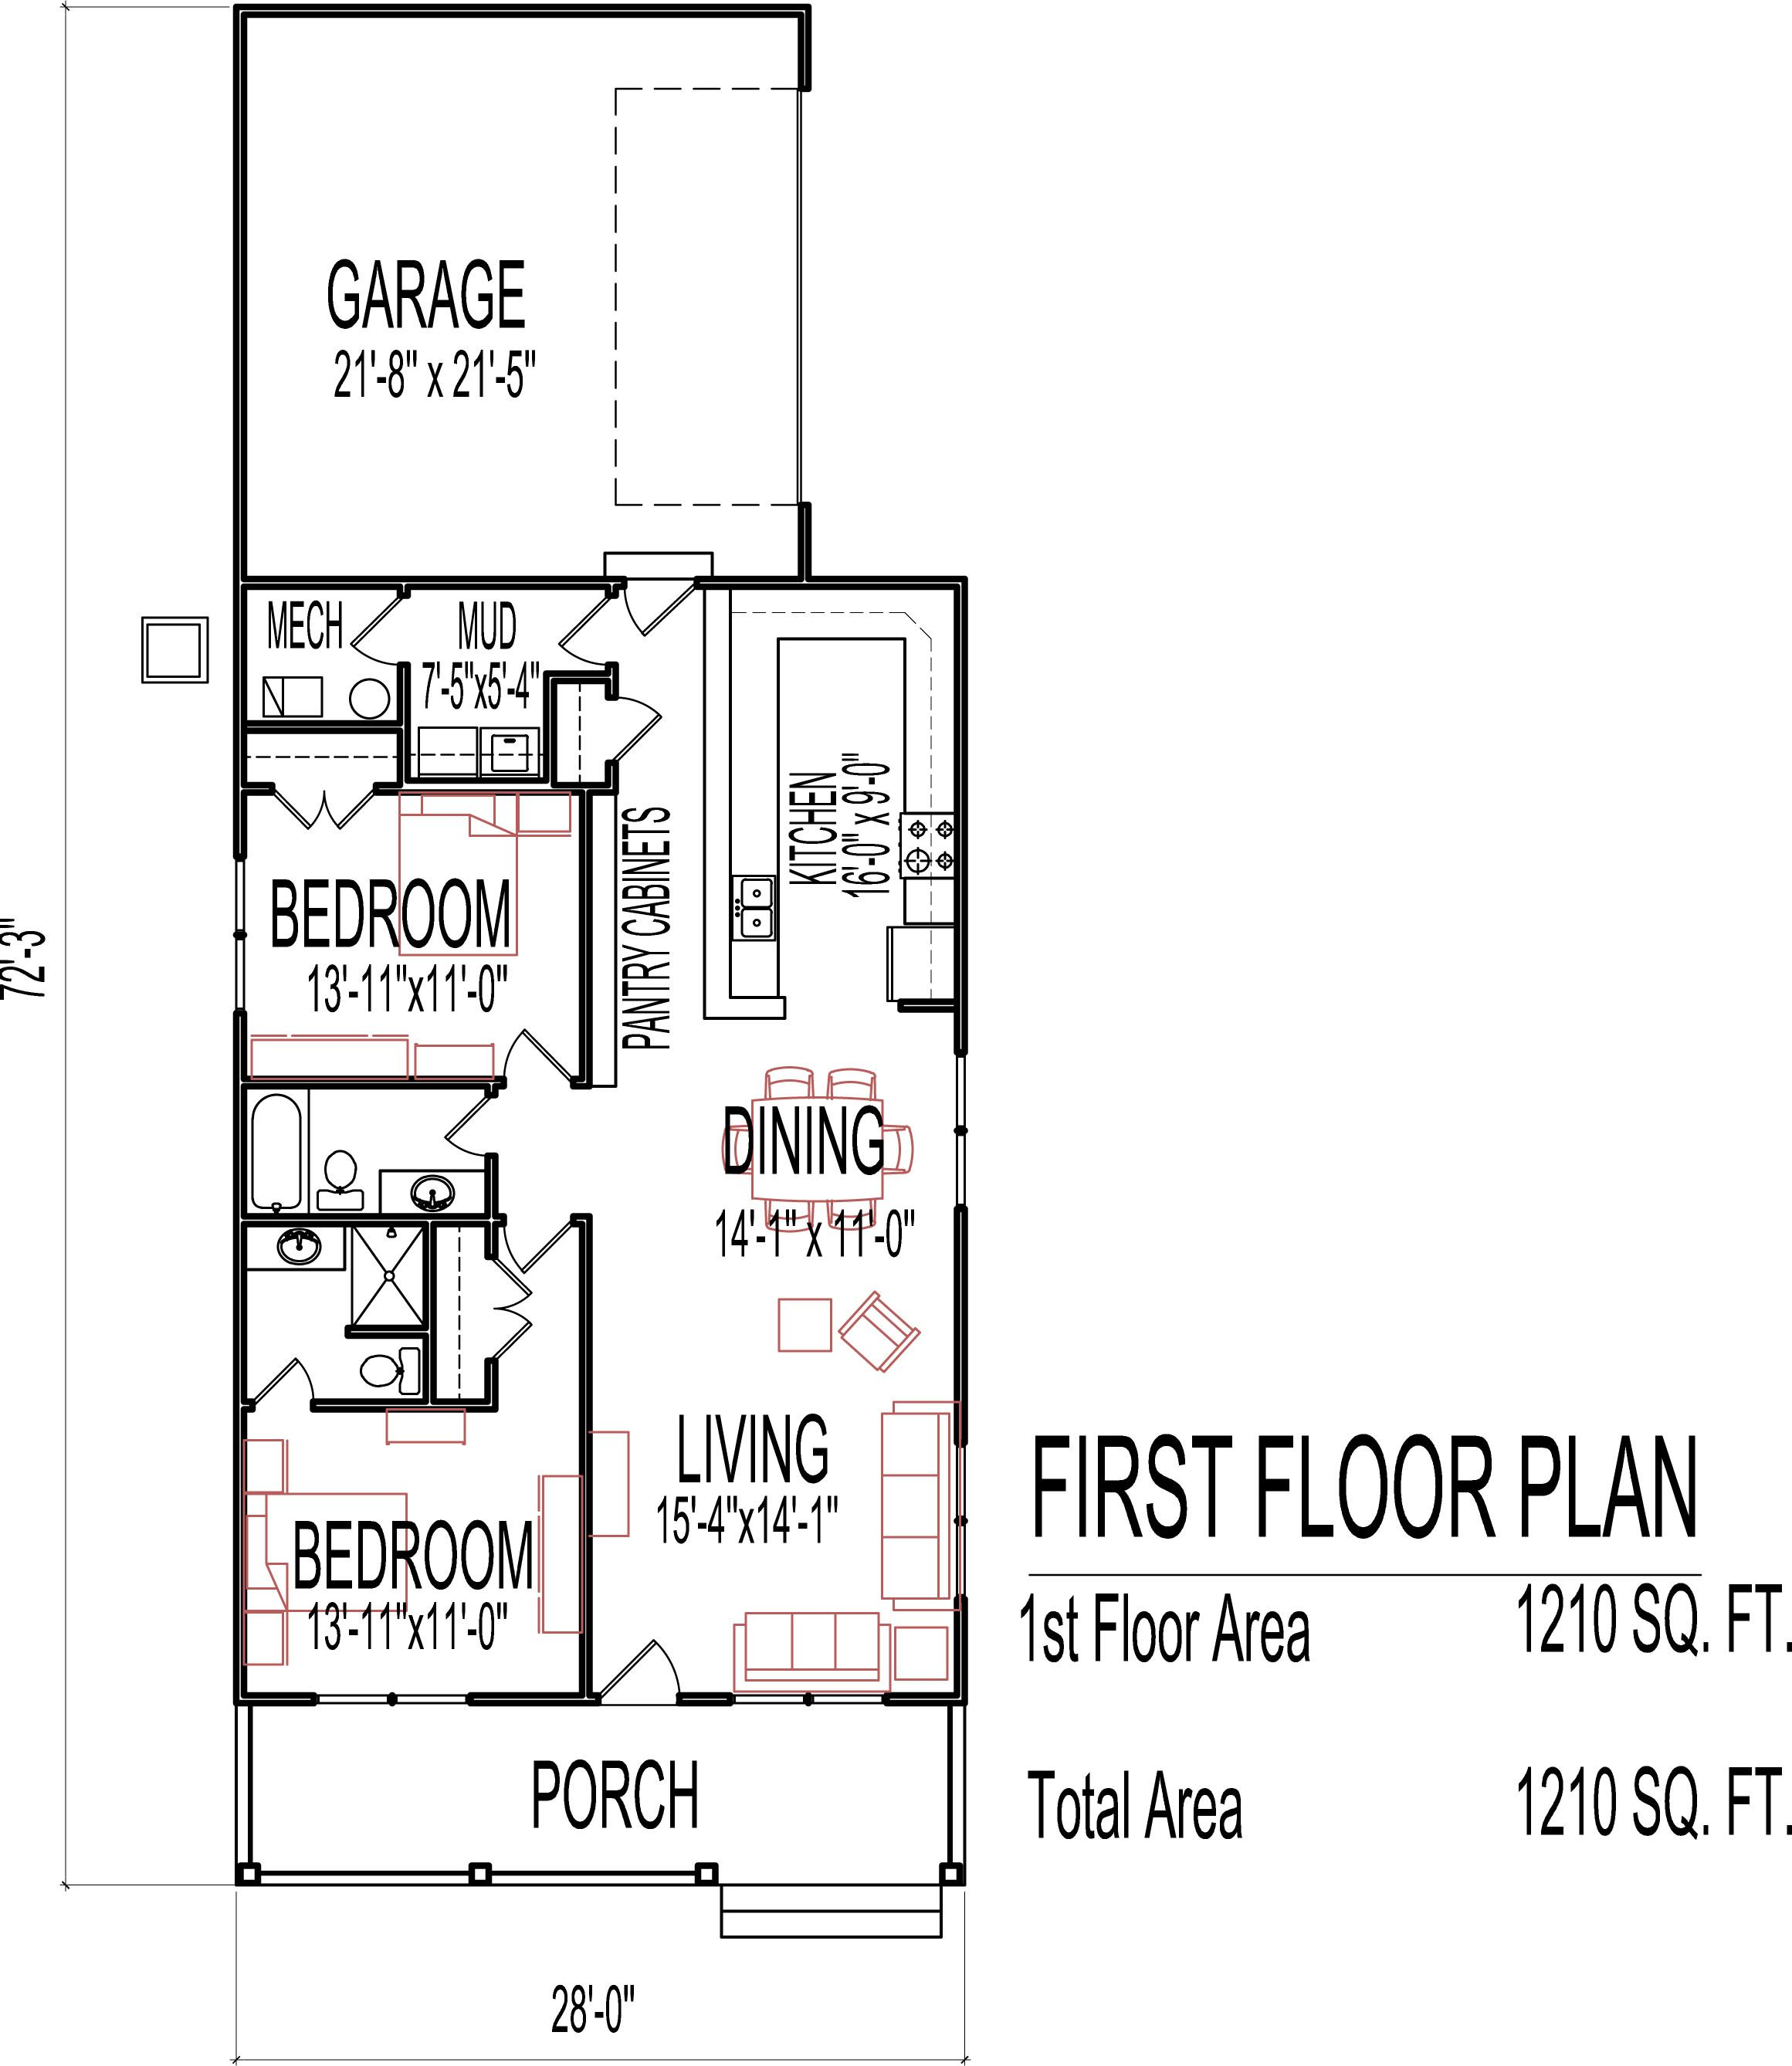 Simple house plan with 2 bedrooms and garage - Small Low Cost Economical 2 Bedroom 2 Bath 1200 Sq Ft Single Story House Floor Plans Blueprint Drawings Two Car Garage Dallas San Antonio El